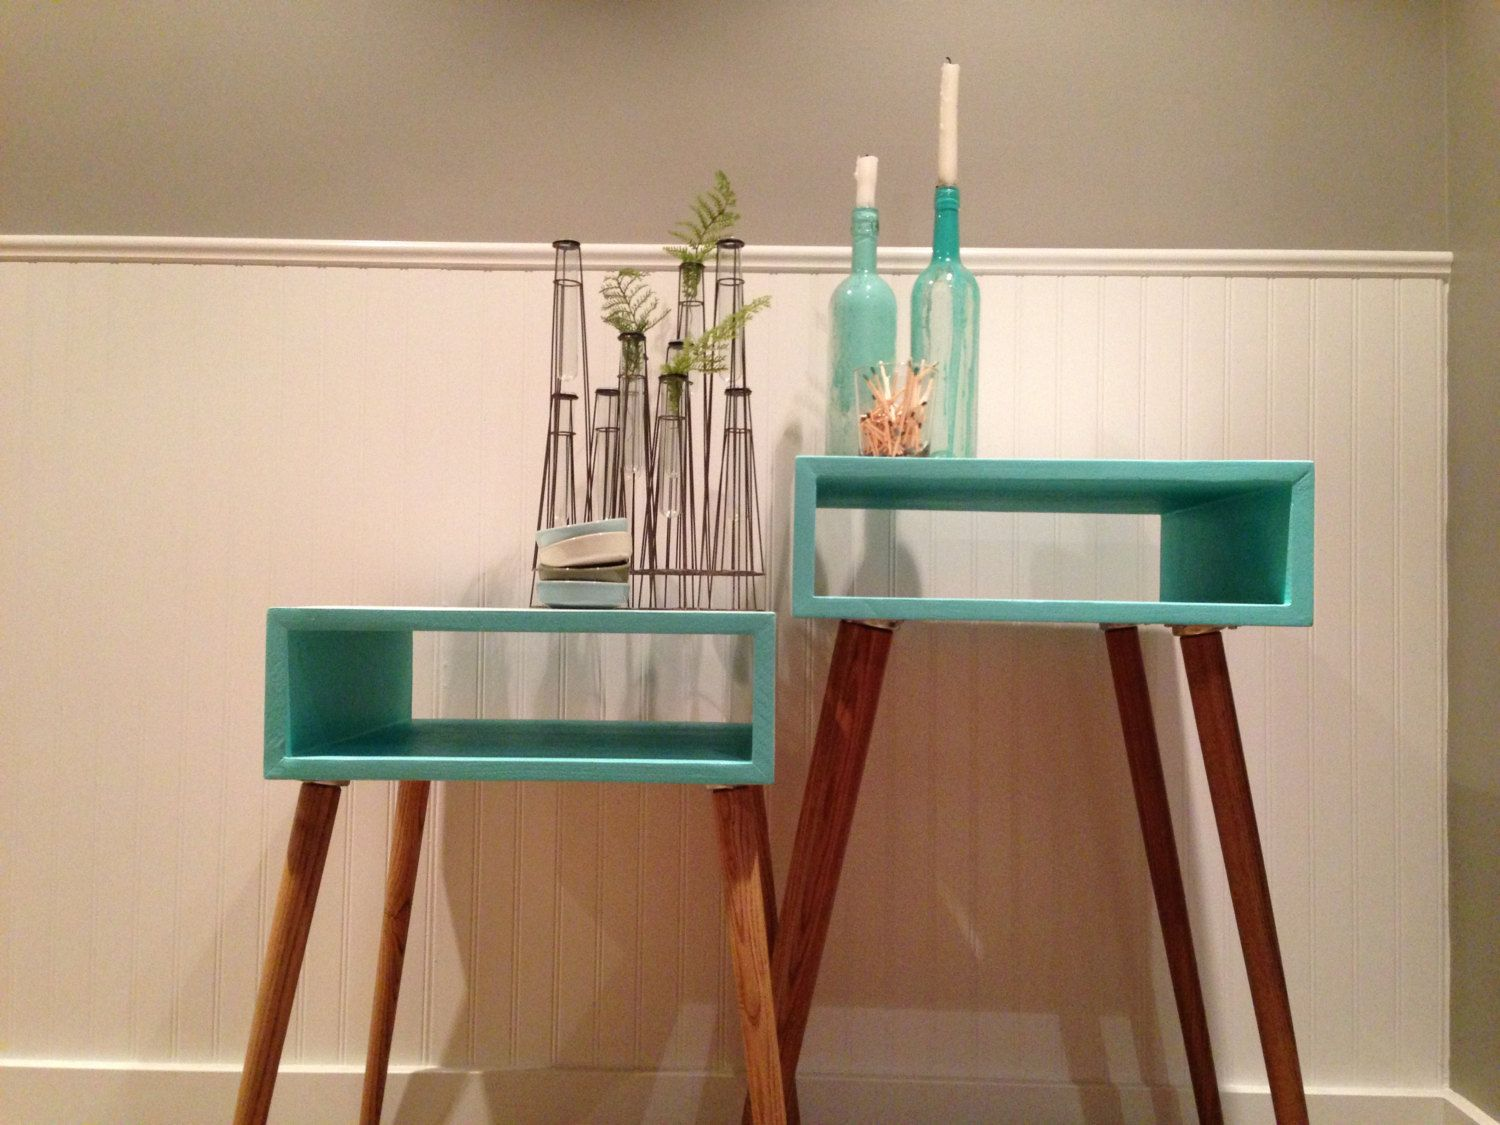 images about mid century modern project on pinterest - Mid Century Modern Decor